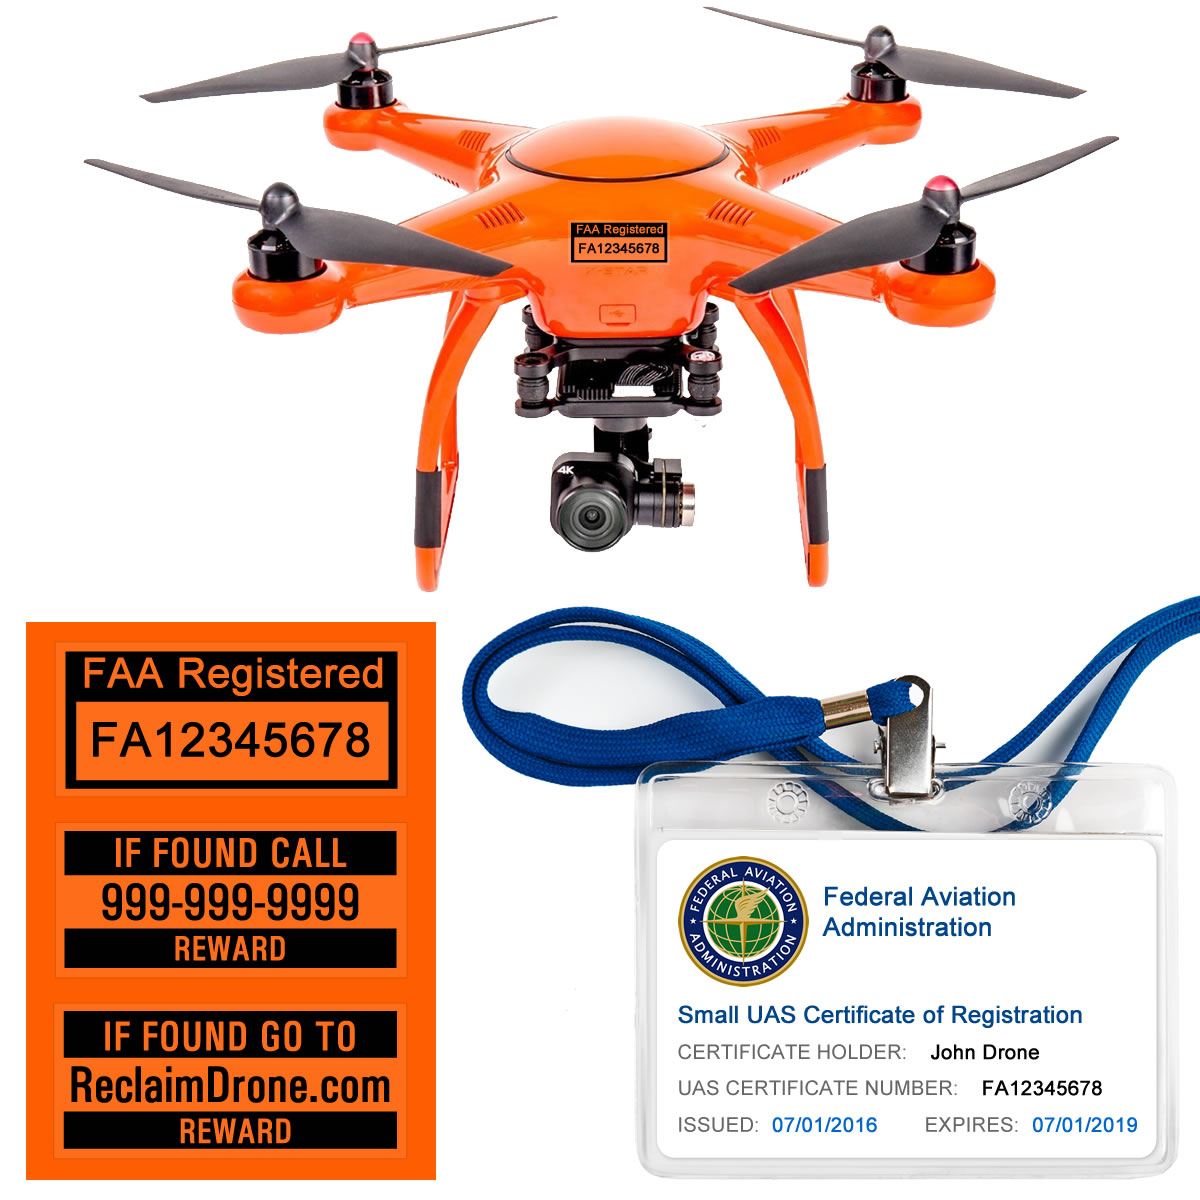 Autel X-Star FAA Certificate Registration ID card and label bundle for hobbyist drone pilots